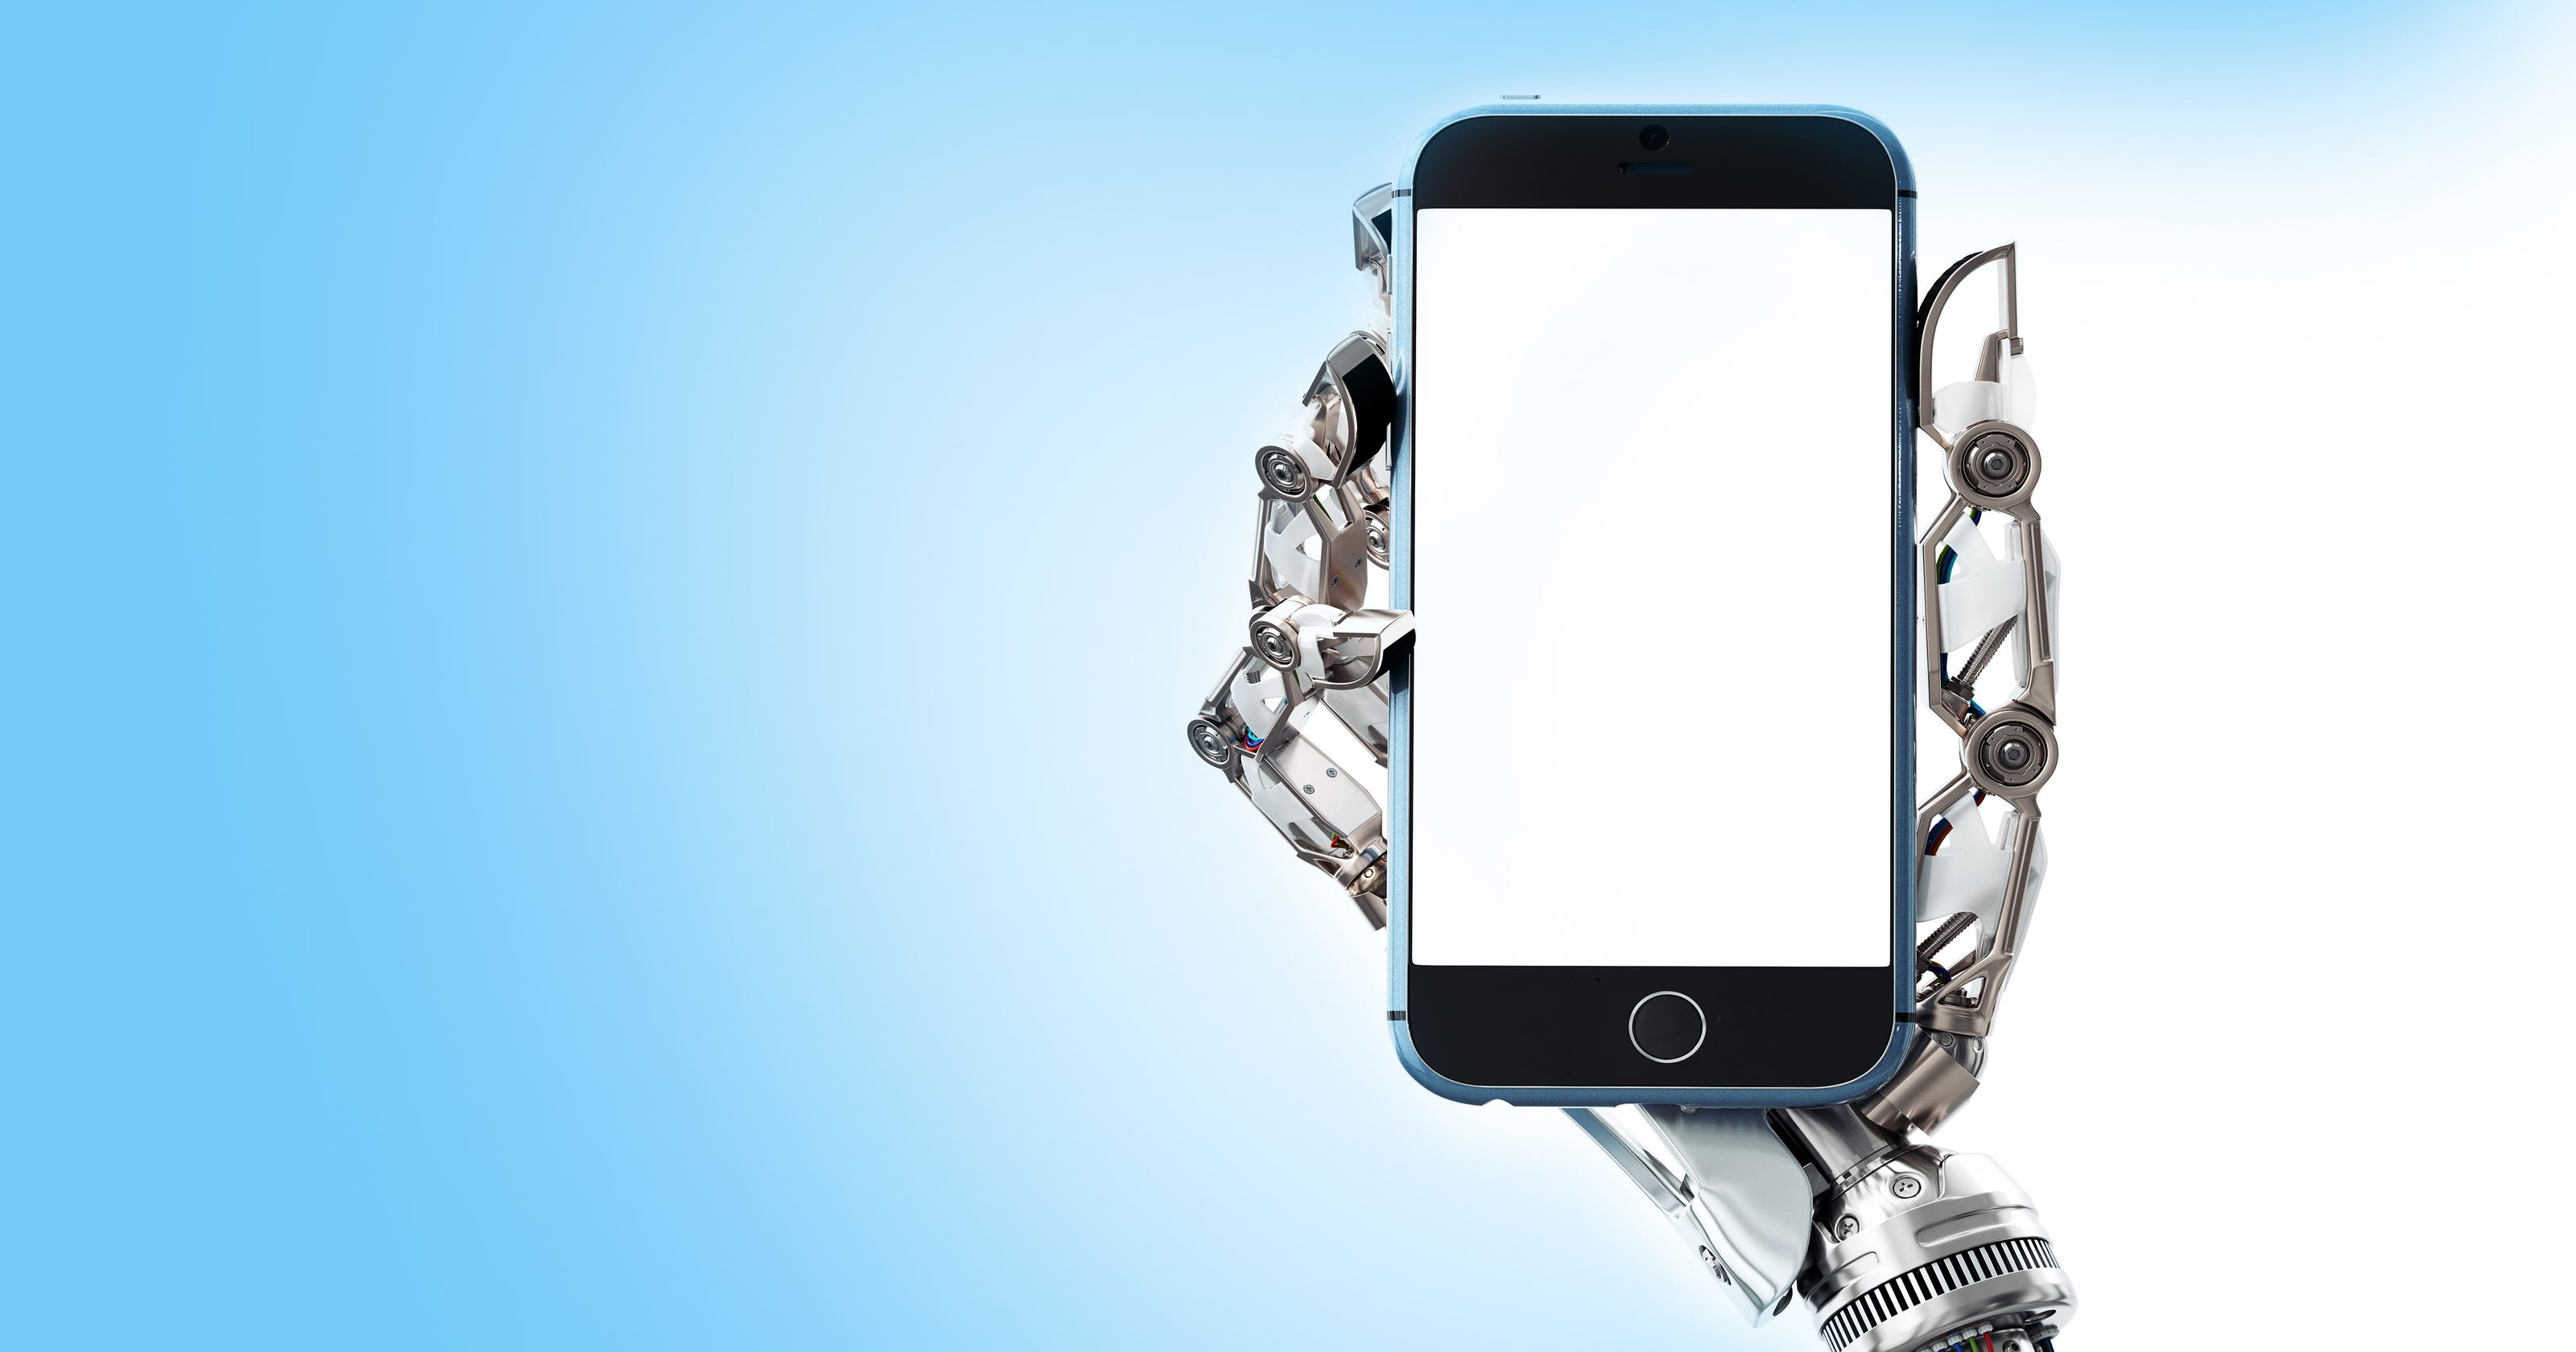 Robocall rule changes up for review by FCC